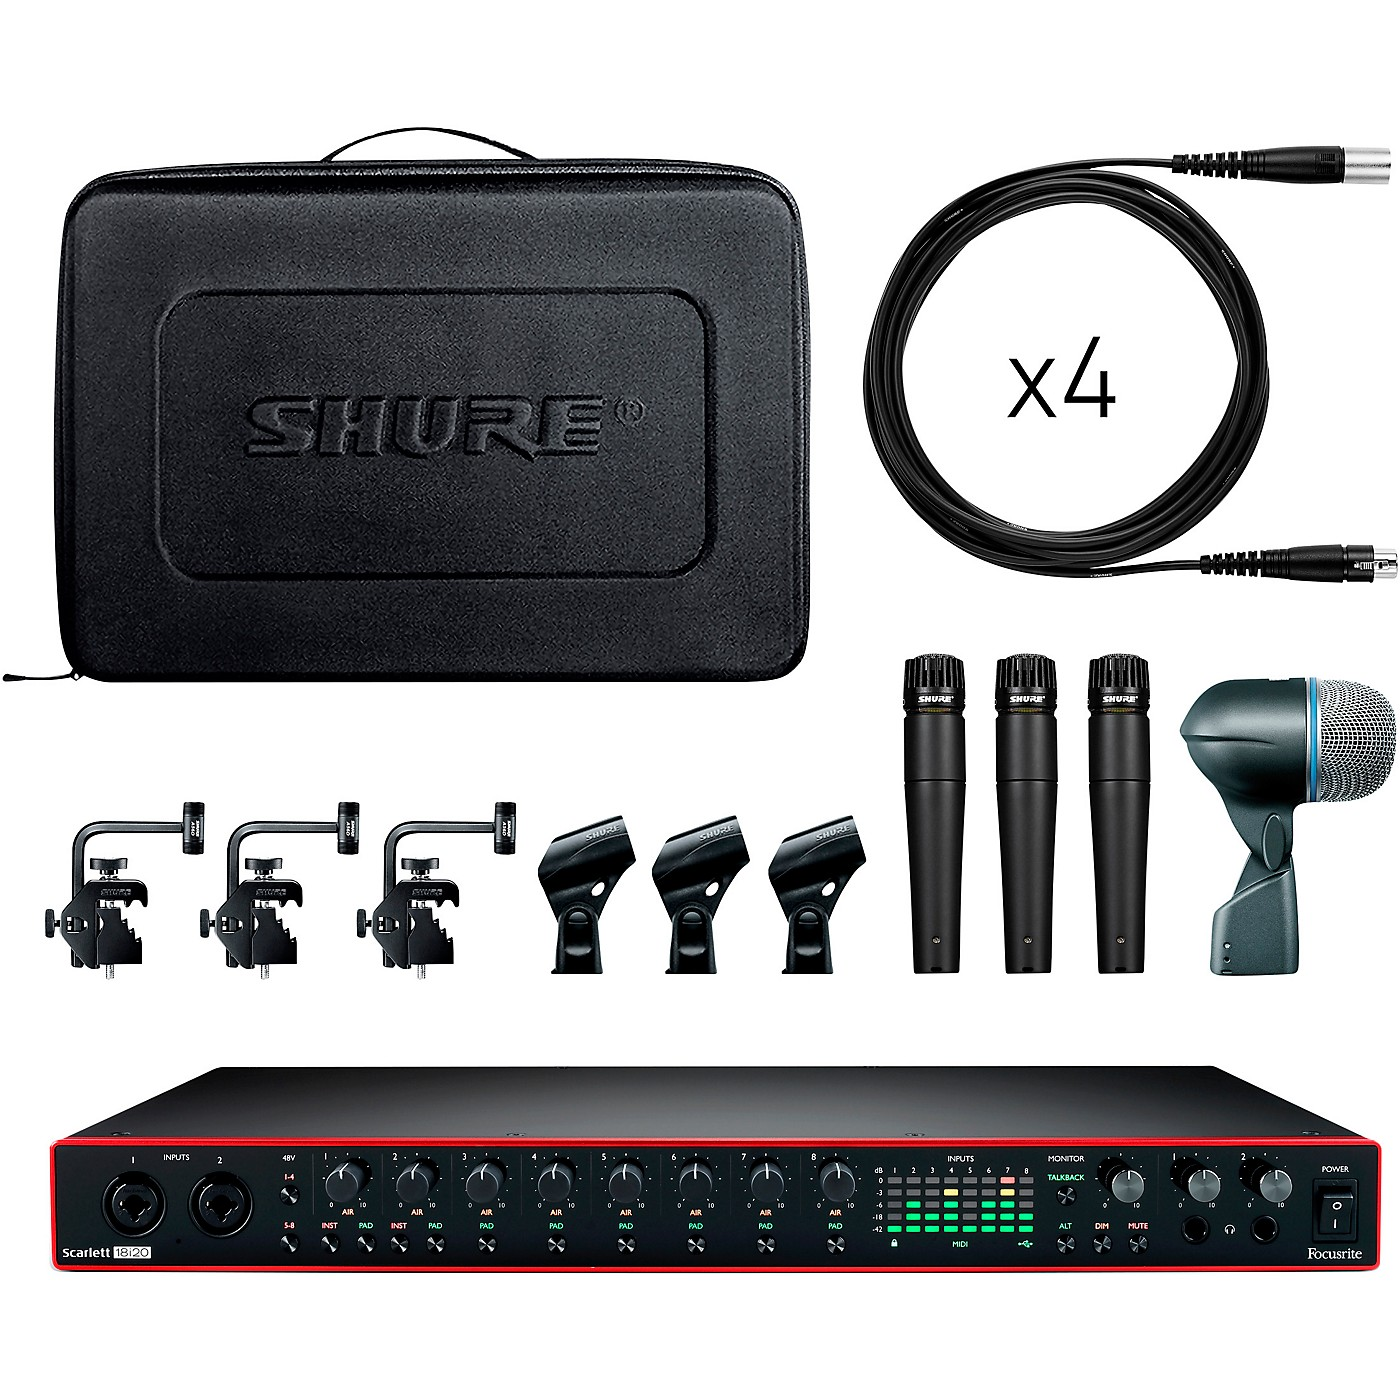 Shure Drummer's Track Pack Bundle With Focusrite Scarlett 18i20 and Shure DMK57-52 Drum Microphone Kit thumbnail